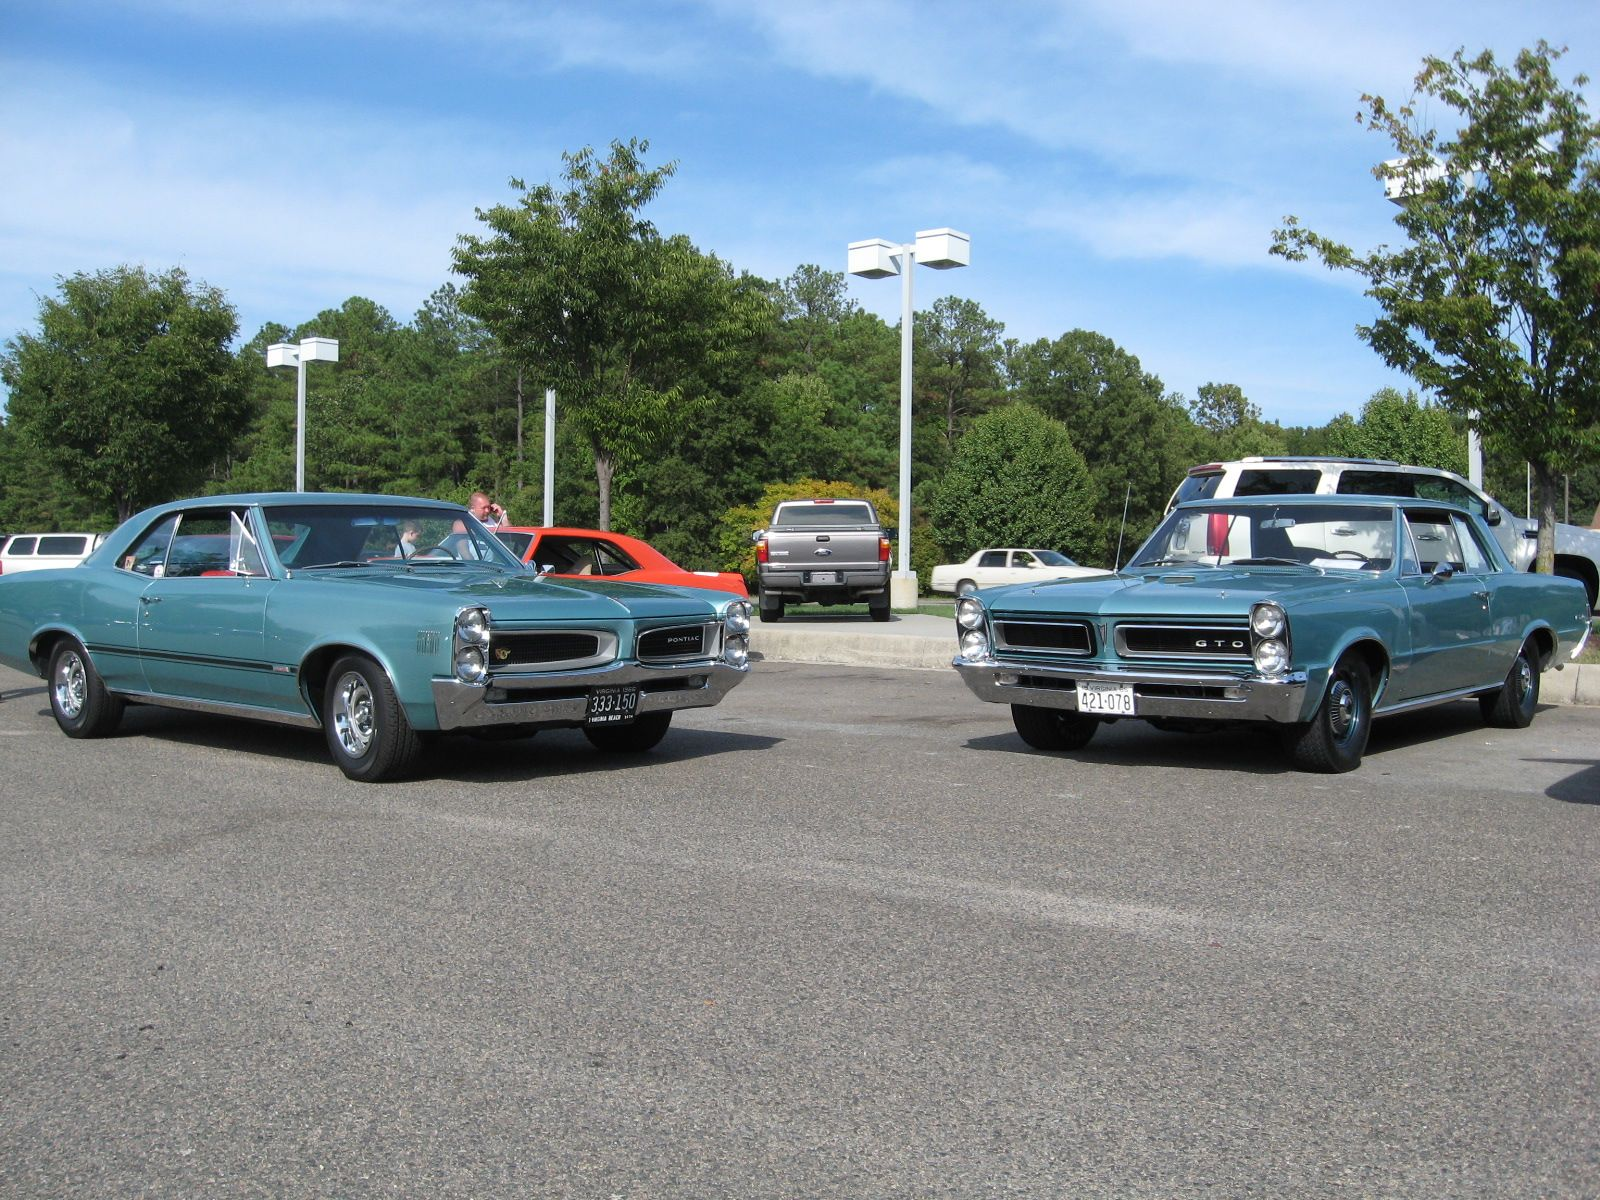 Our 1966 Pontiac Lemans Ohc 6 Sprint A 1965 Gto With Original Paint Both Are Reef Turquoise Code K Cars Pontiac Lemans Pontiac 1965 Gto